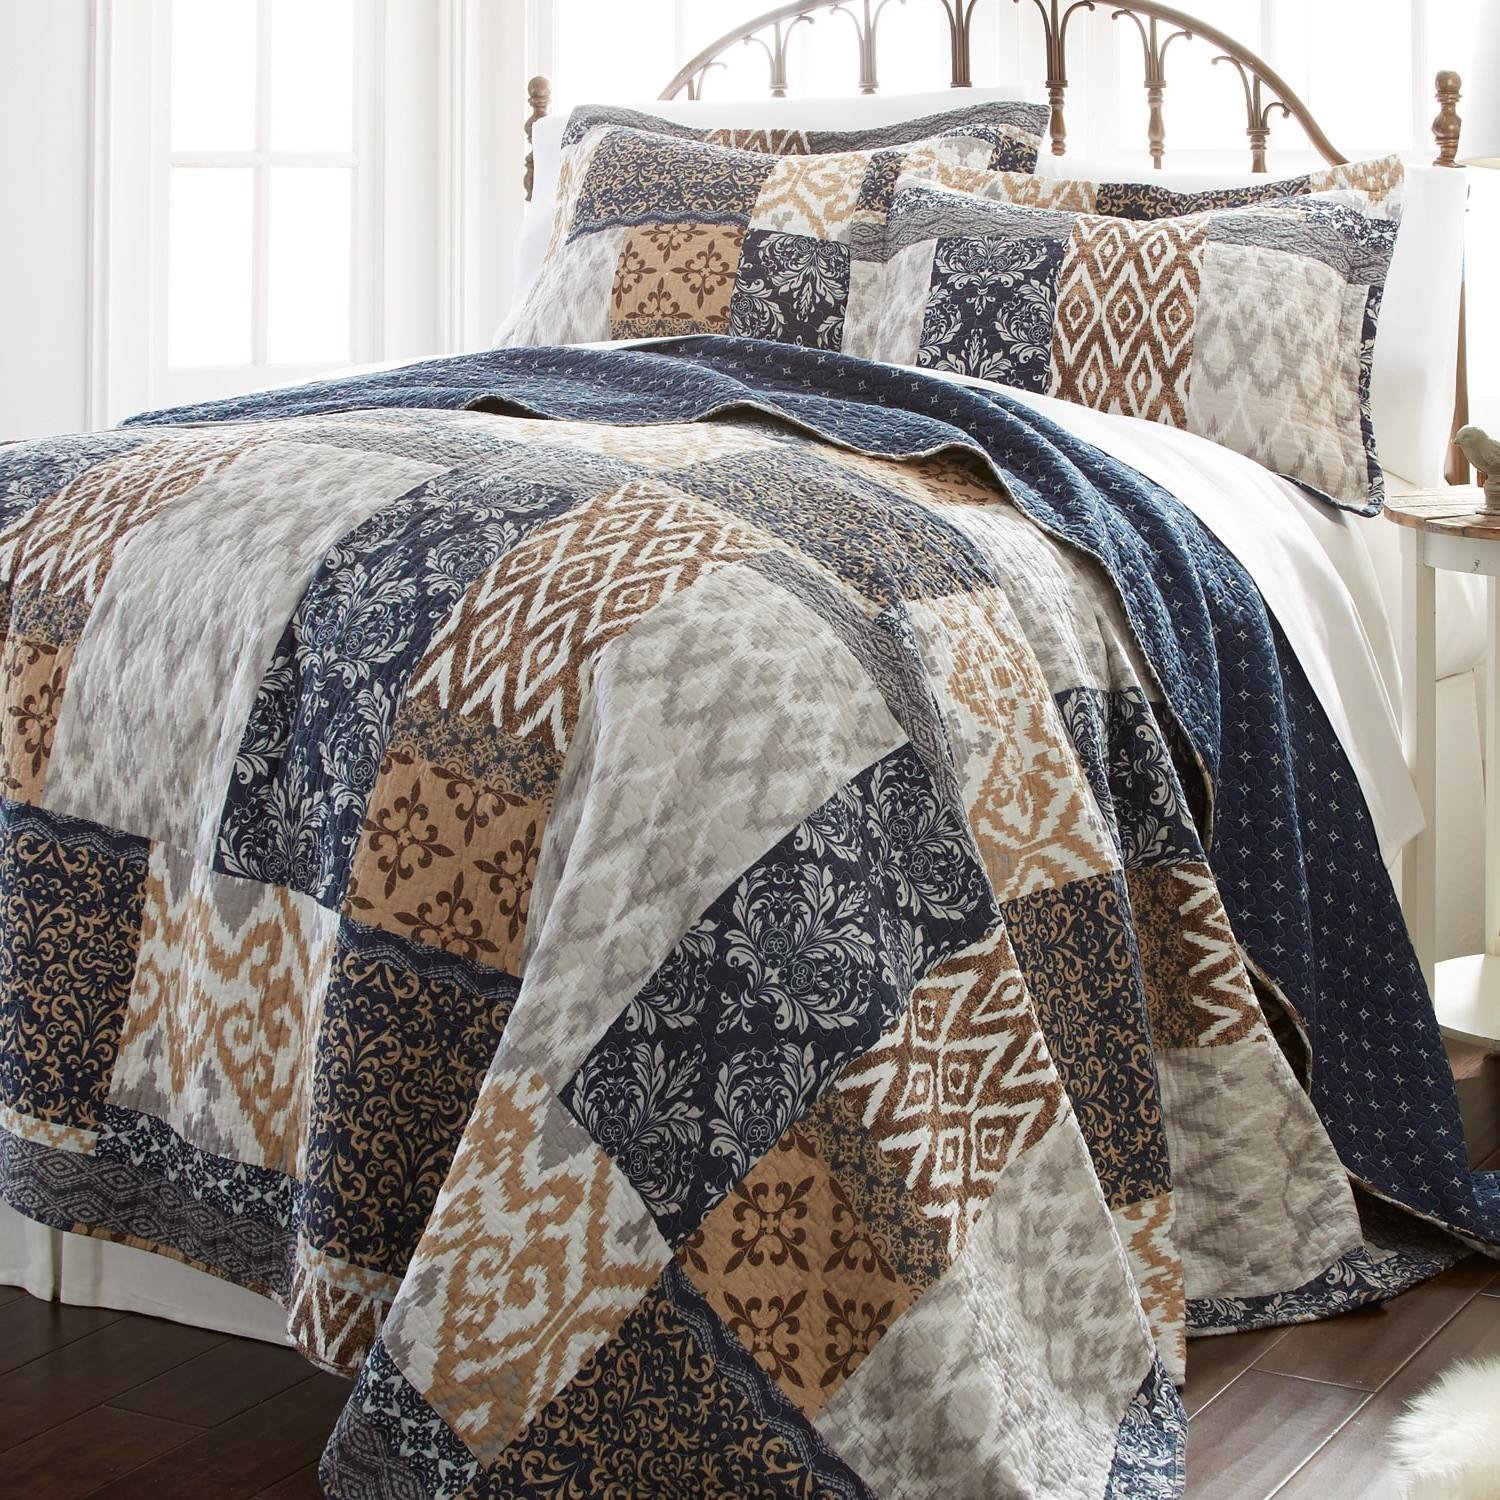 OTS 3 Piece Multi Color Patchwork King Size Quilt, Blue White Medallion Damask Square Rectangle, Floral Zig Zag Pattern Tan Brown Boho Chic Southern Patch Work, Cotton, Polyester